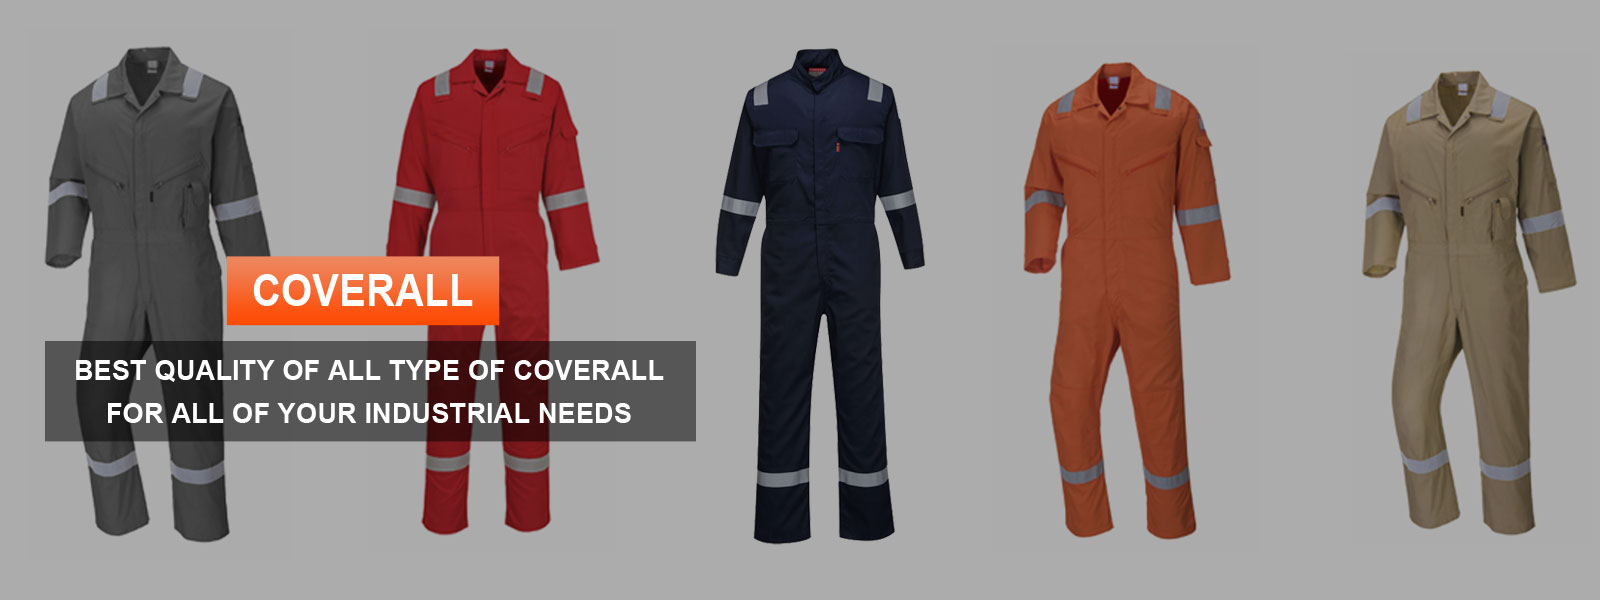 Coverall Manufacturers in Tajikistan